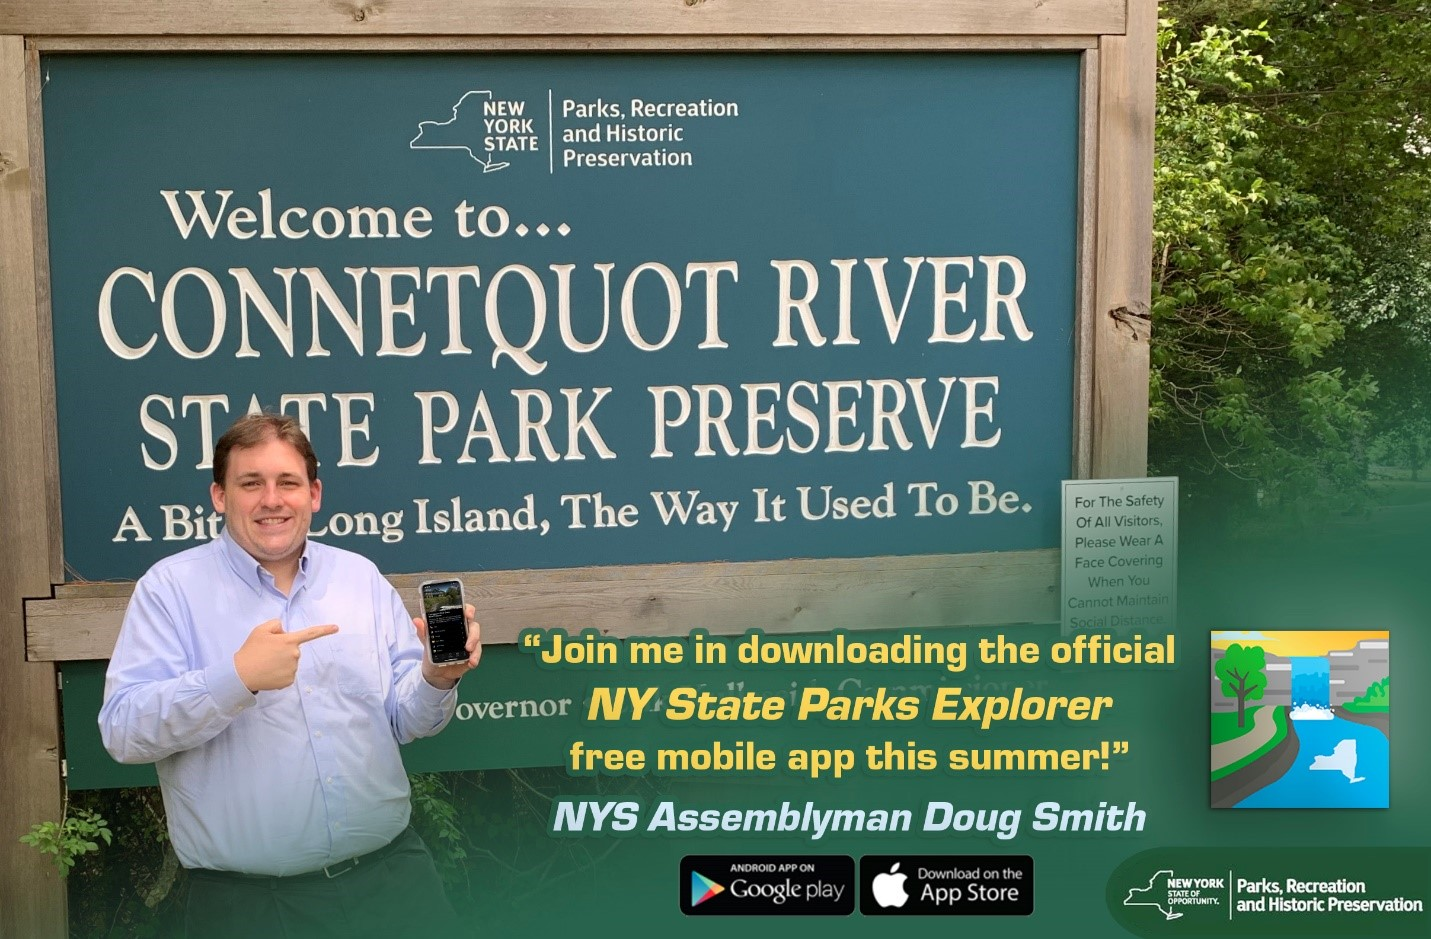 Smith A New App for Exploring State Parks is Available